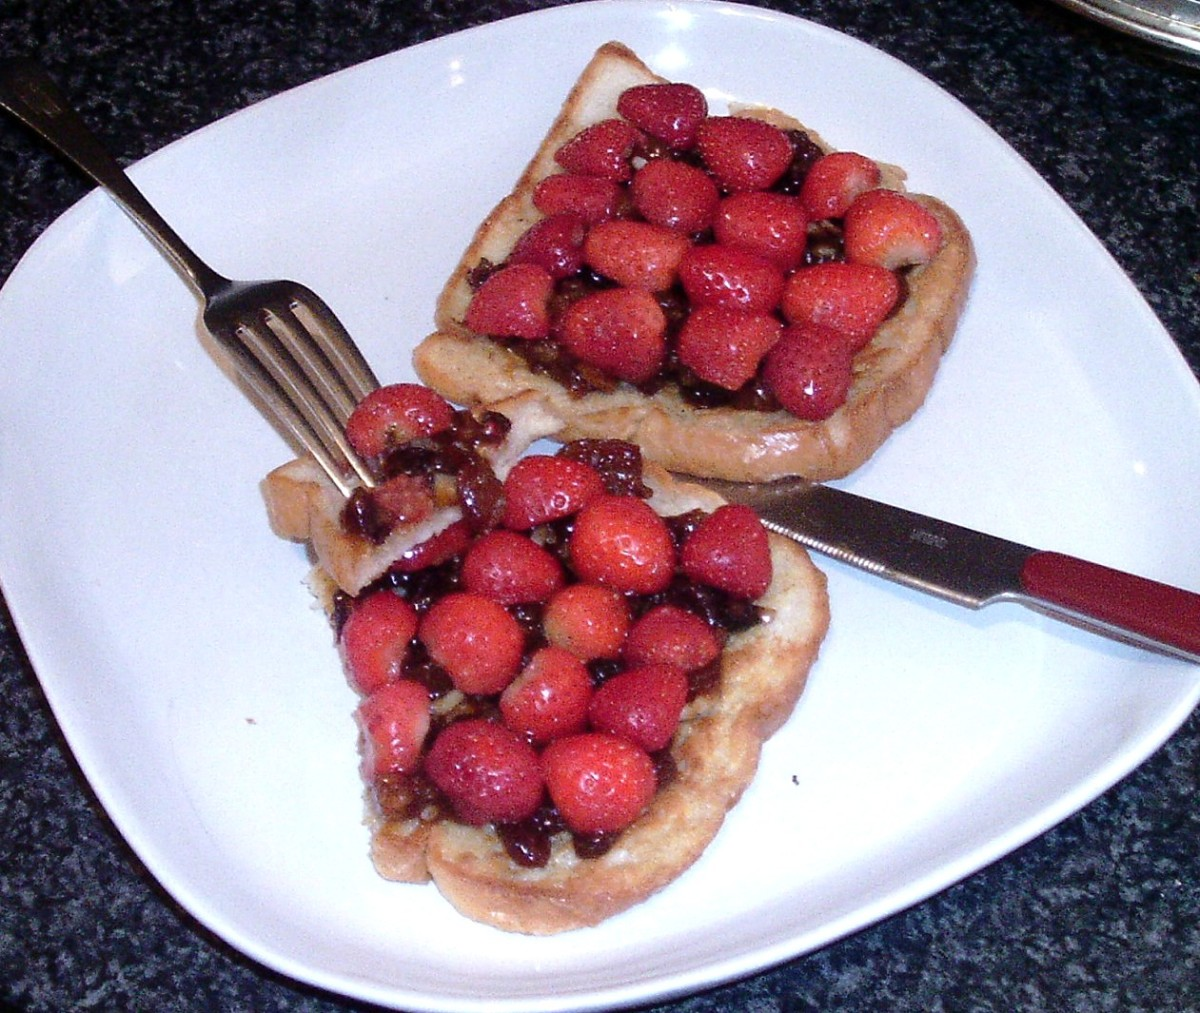 Mincemeat is spread on cinnamon and cumin spiced French toast before halved fresh strawberries are arranged on top